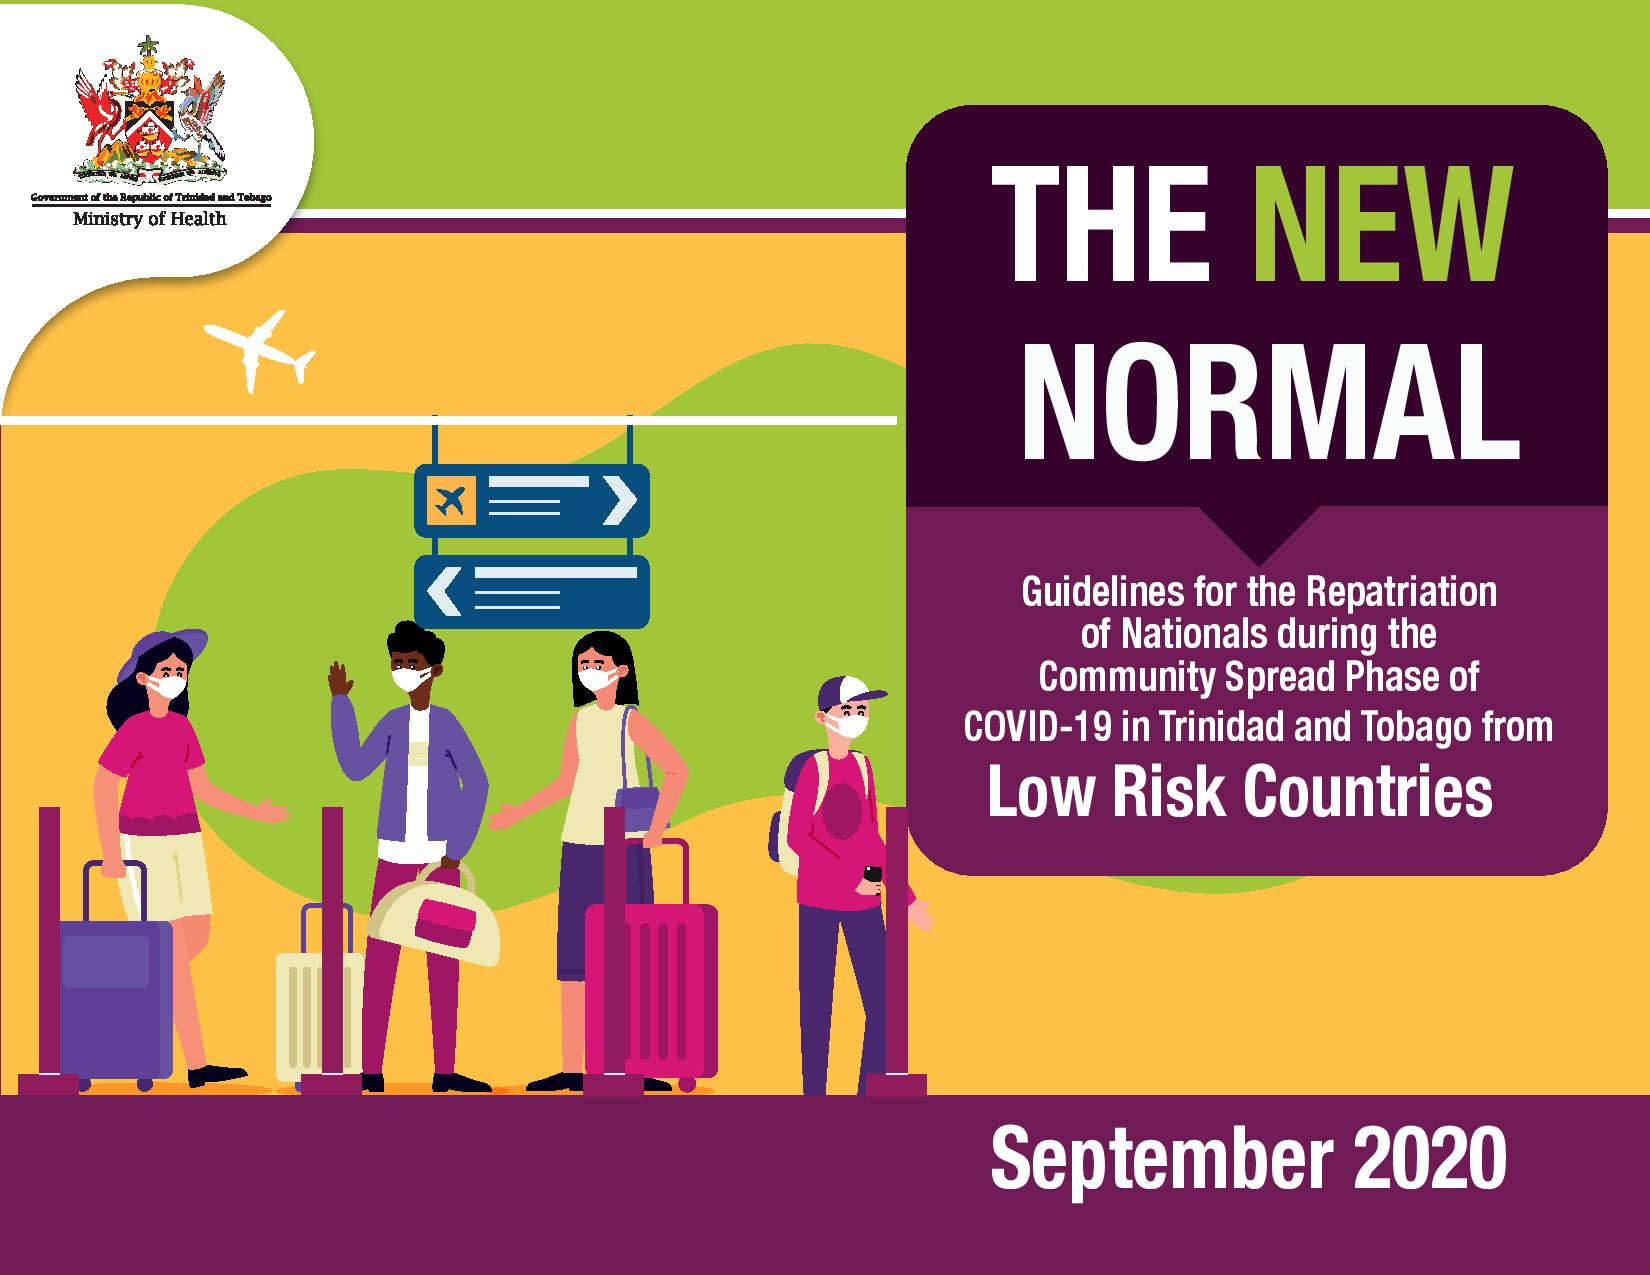 Returning Nationals - Low Risk Countries